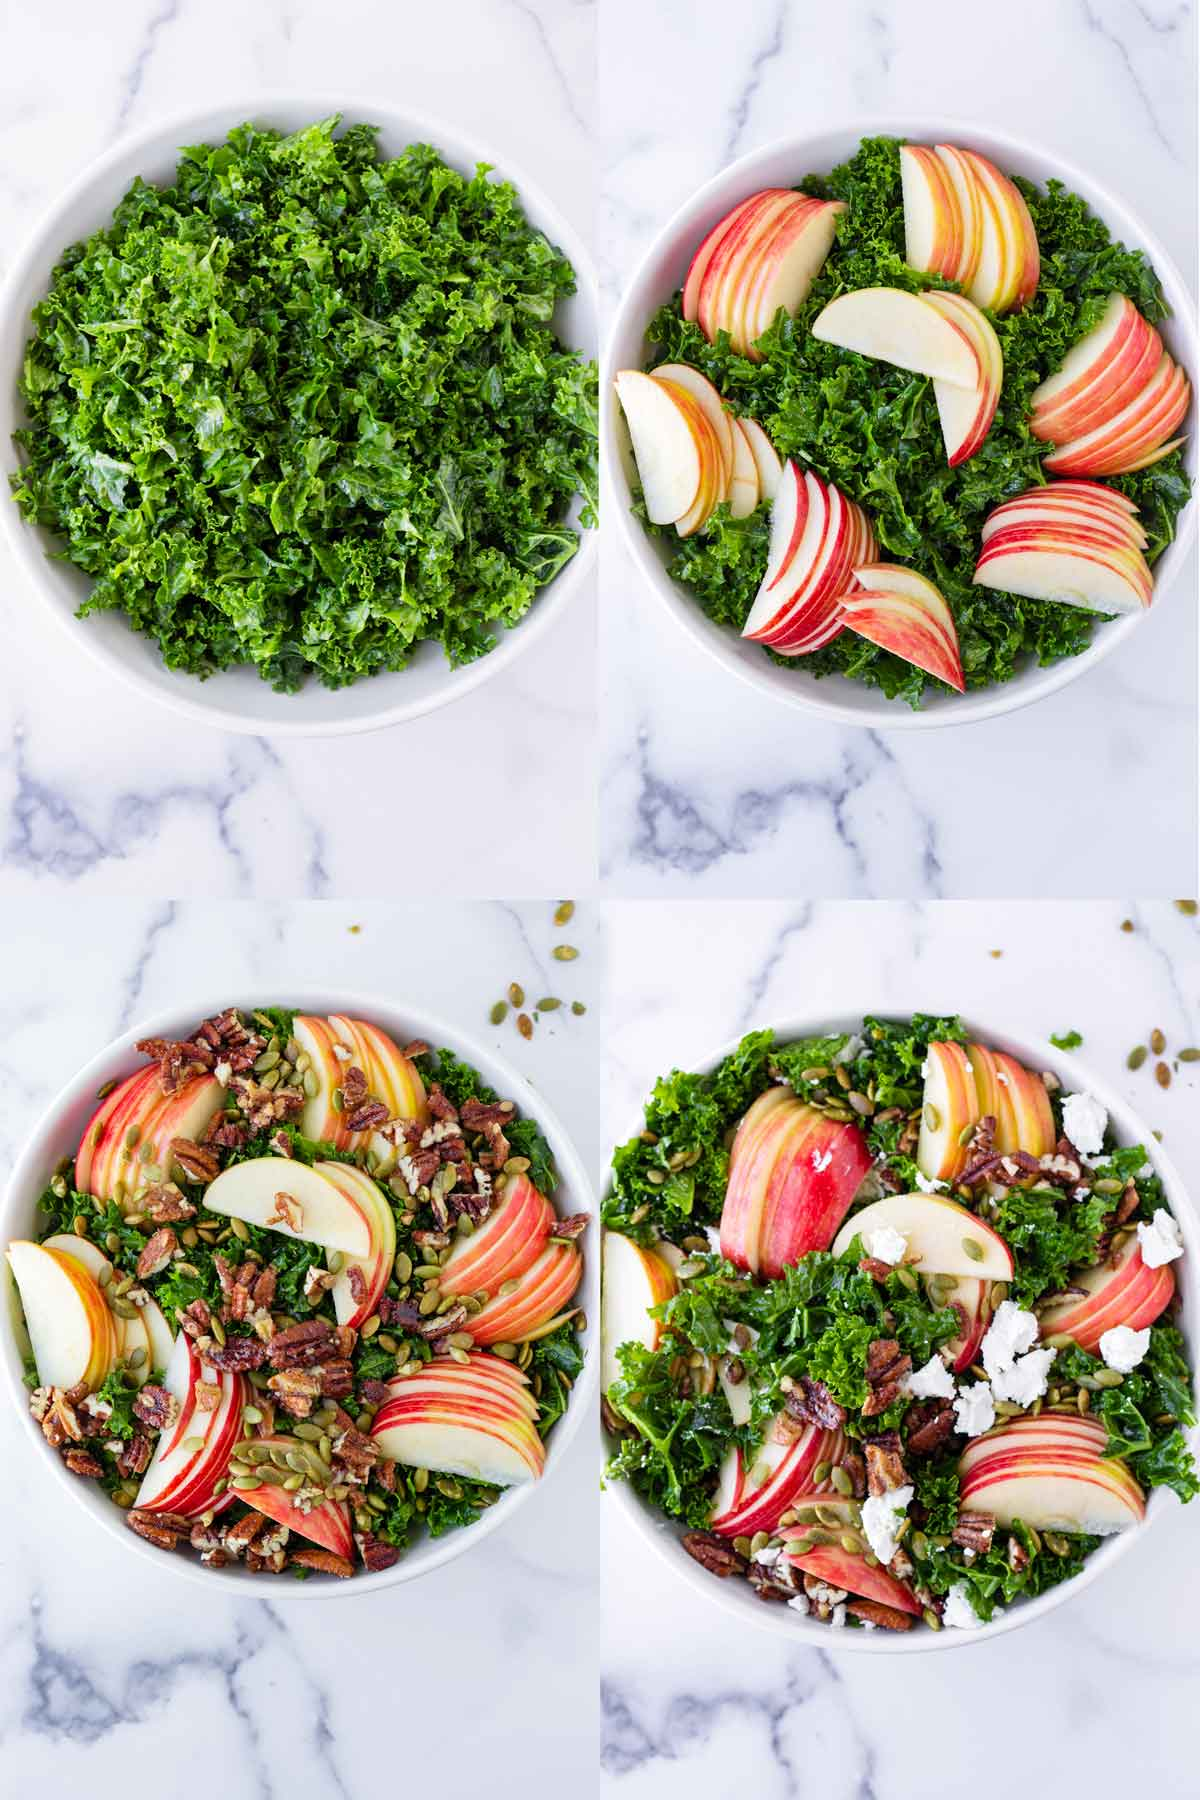 step by step process to assemble a salad